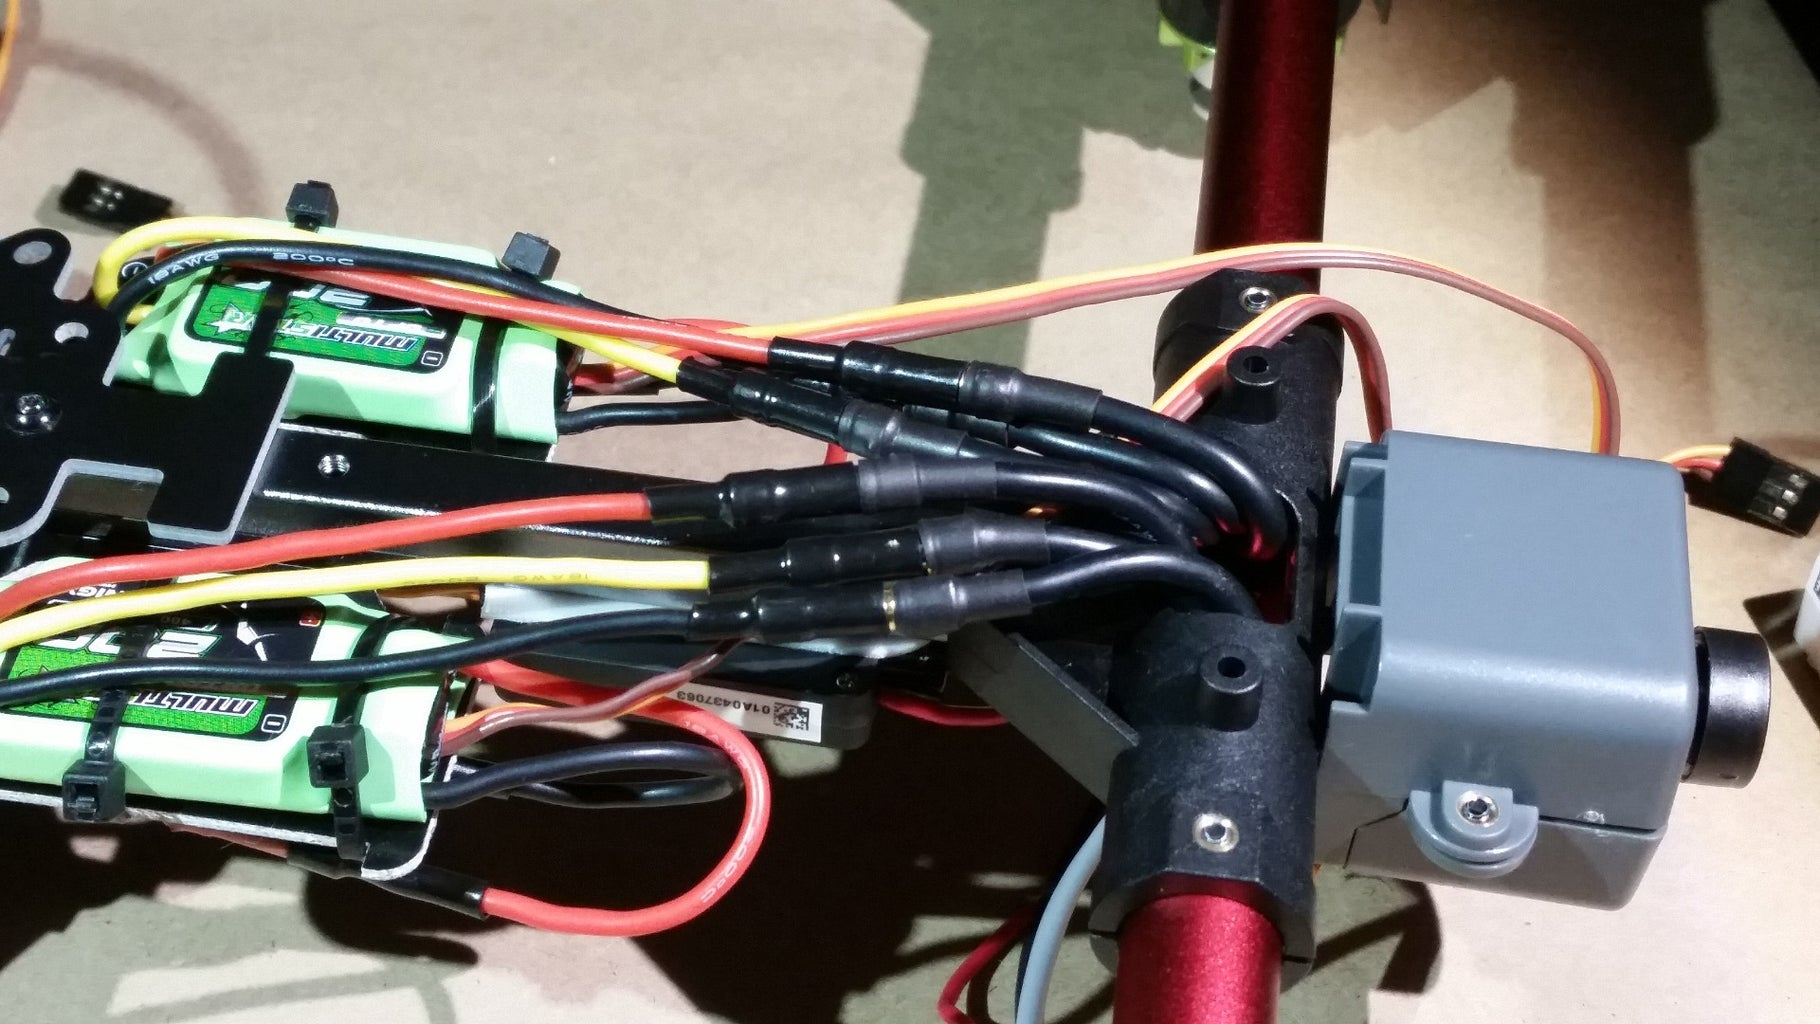 Connect the ESCs to the Motors